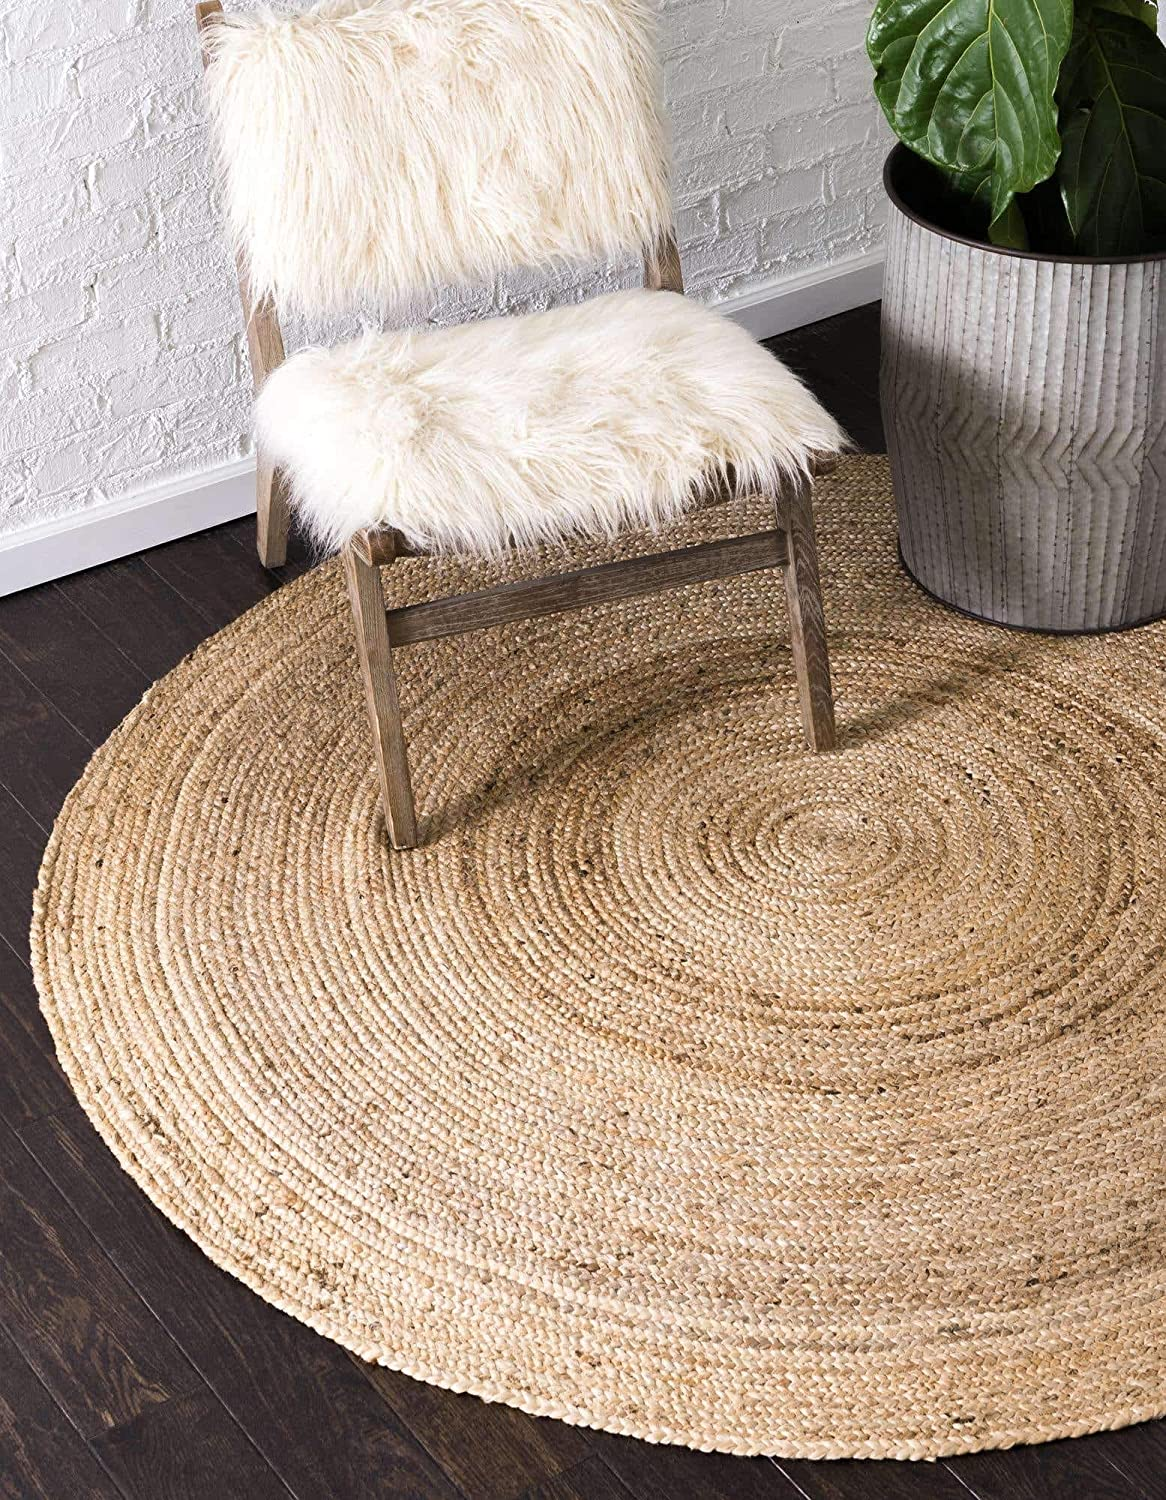 Unique Loom Braided Jute Collection Fibers Seasonal Wrap Introduction 2021 model Hand Natural Woven Na